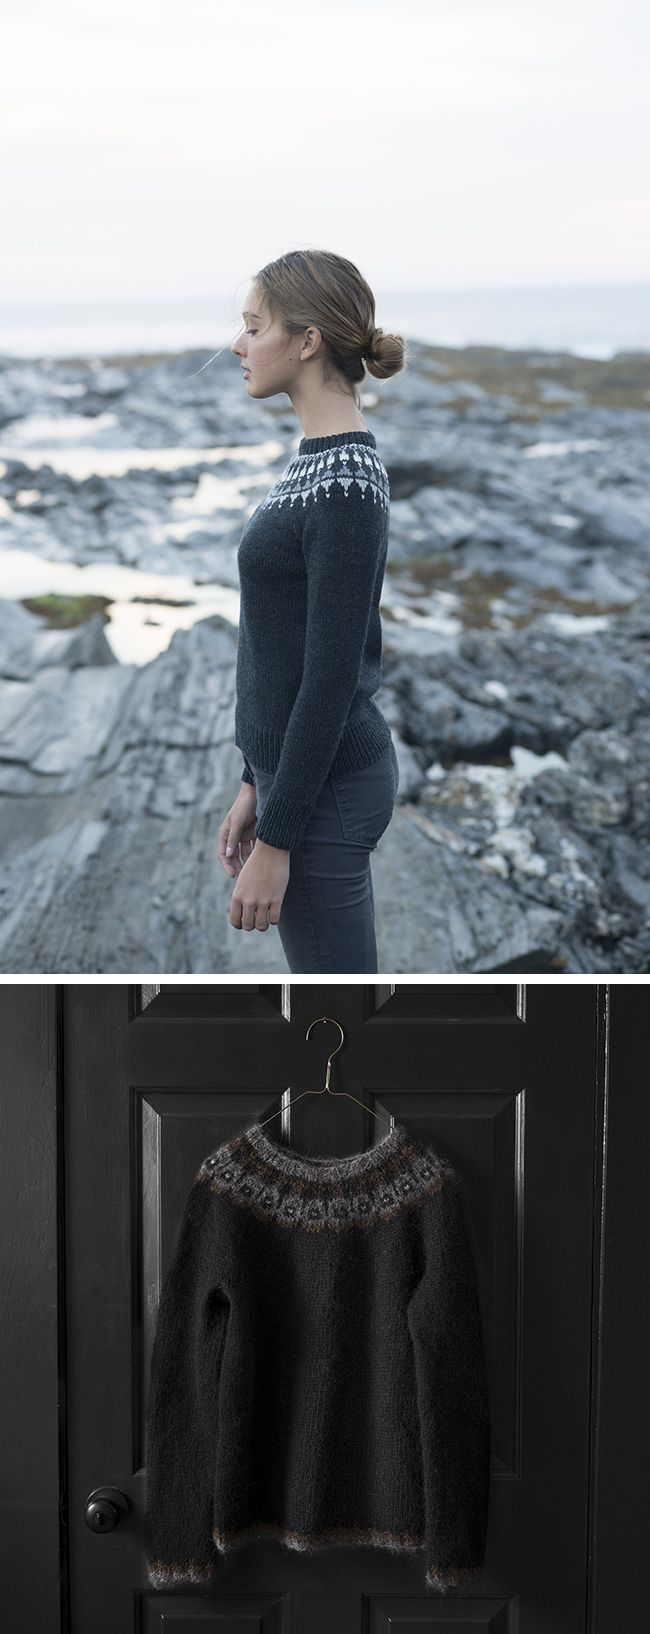 One of the most endlessly irresistible things to me is a colorwork yoke sweater done all in neutrals with the body in charcoal or black. It's so striking and rich and magical somehow. I could…